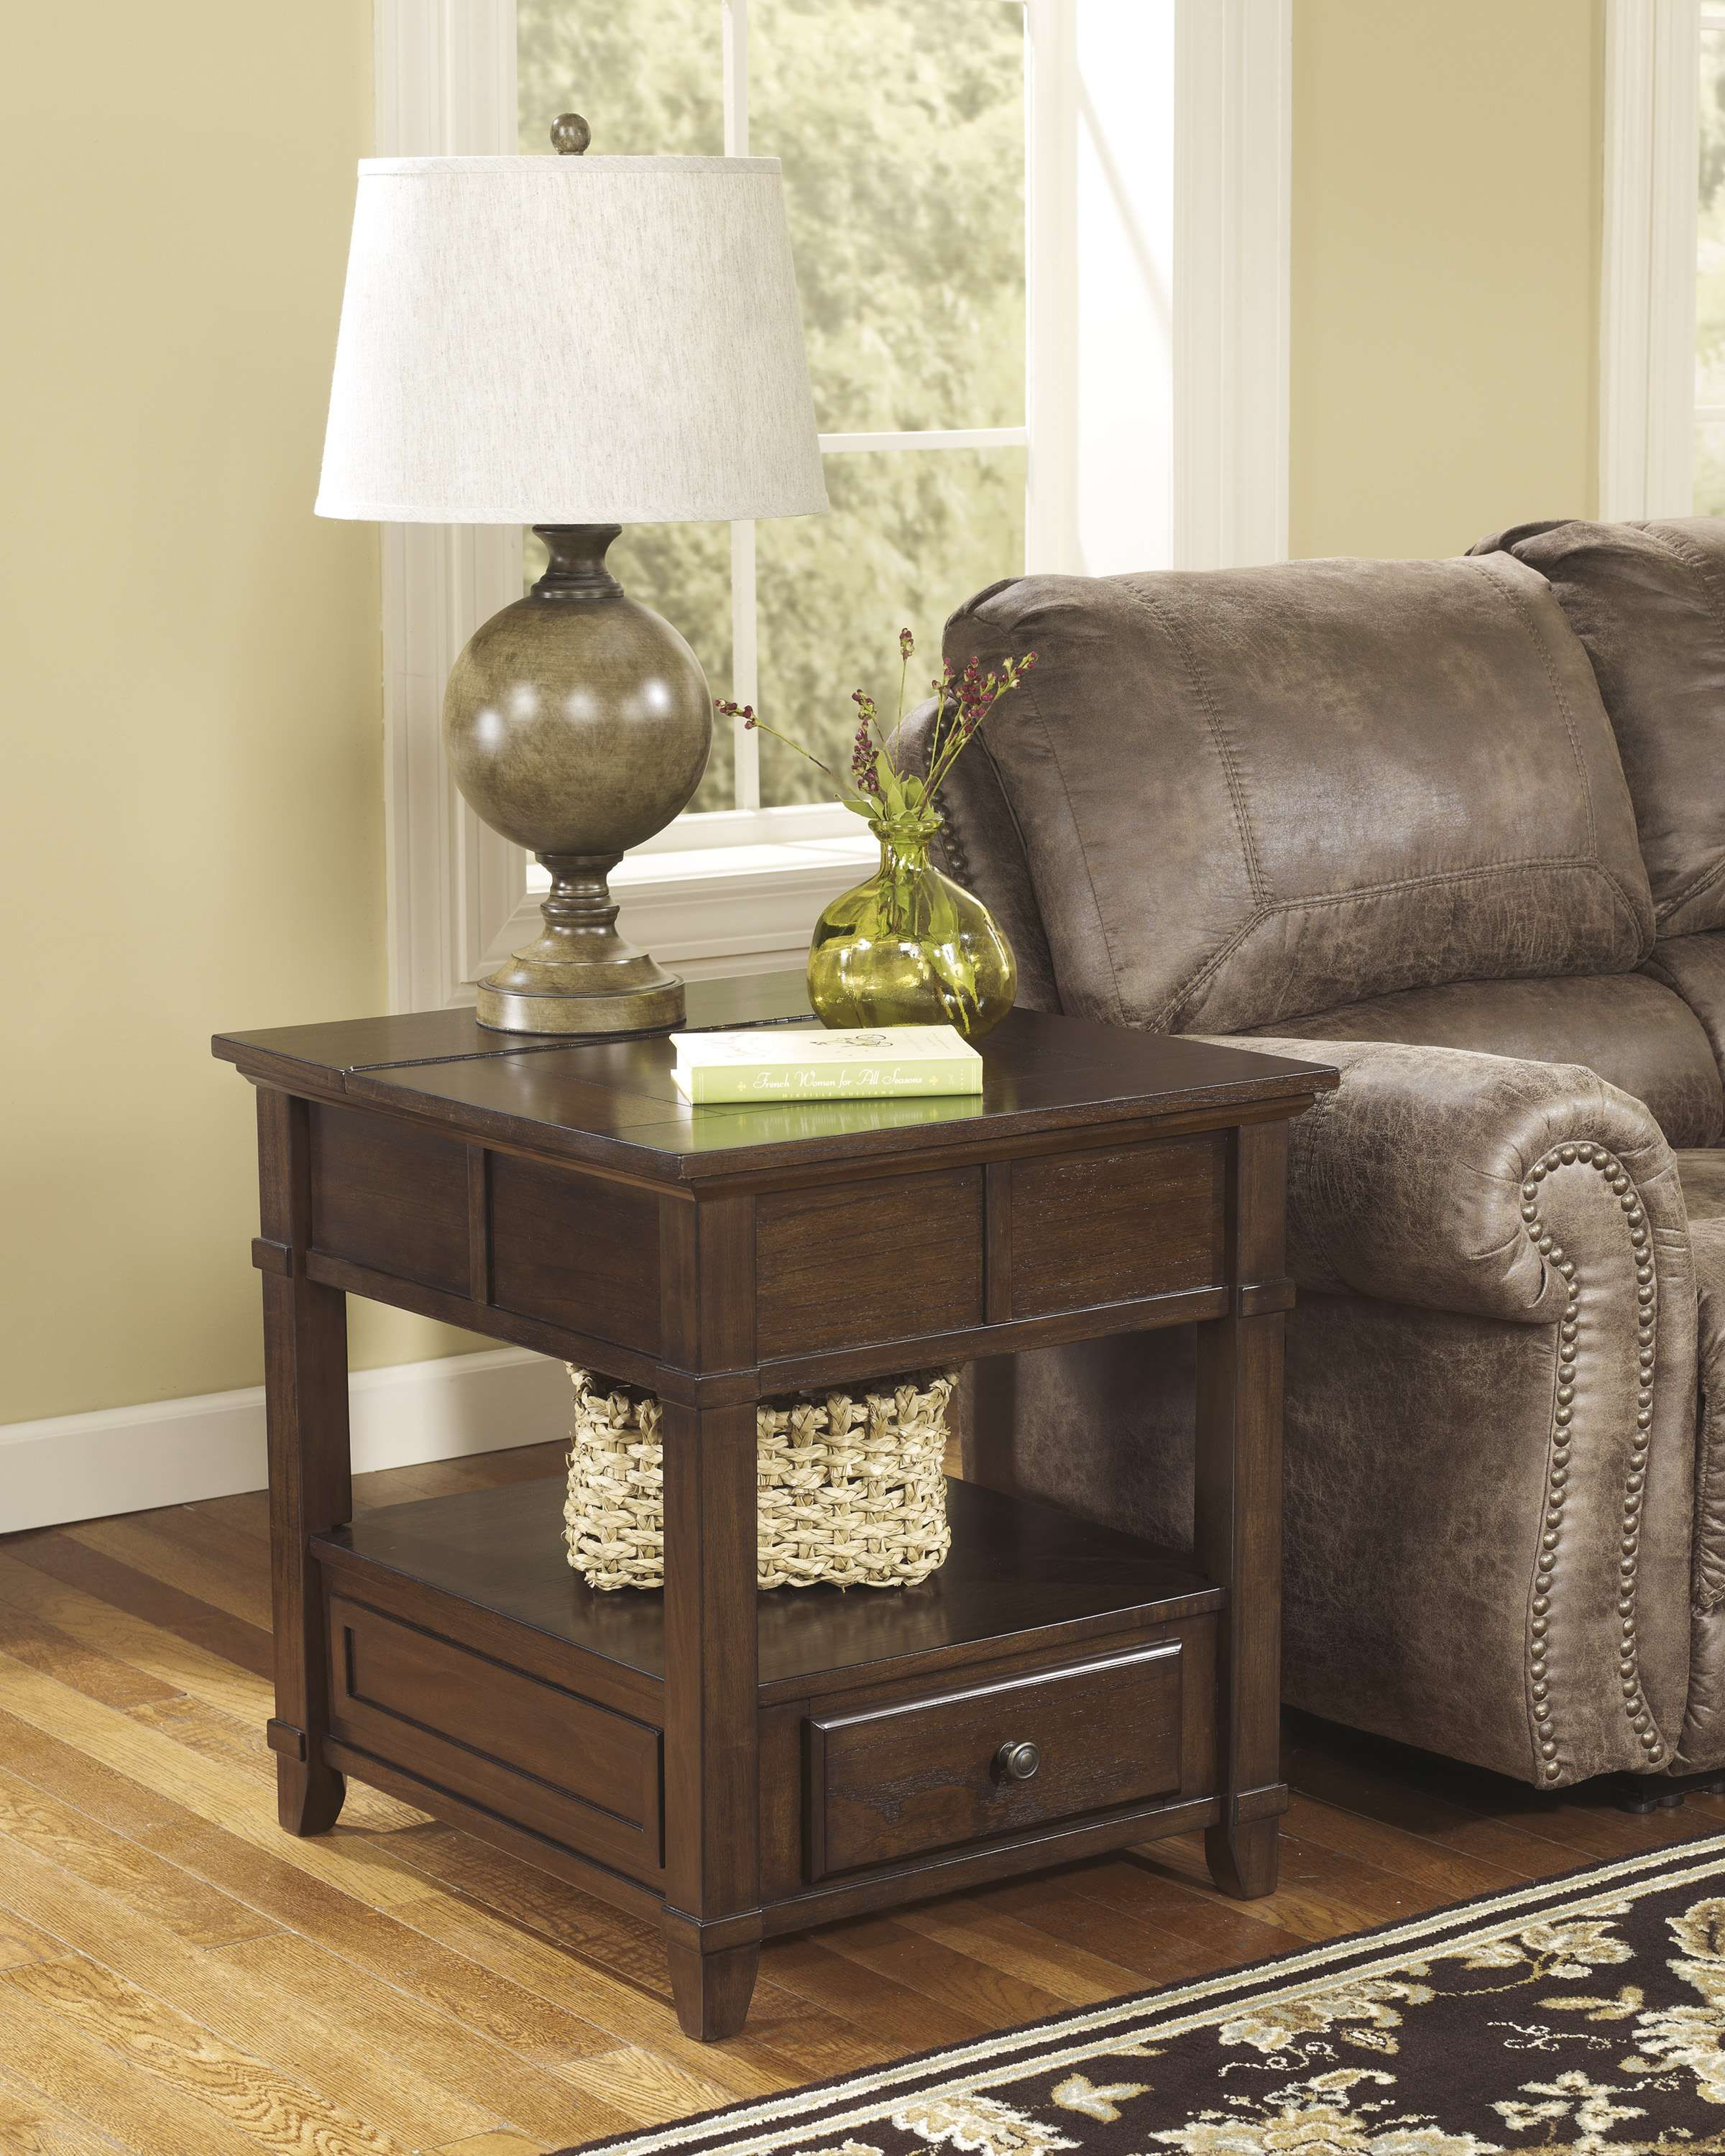 Lowest Price On Signature Design By Ashley Gately Medium Brown Rectangular End Table T845 3 Shop Today Sofa End Tables Furniture Ashley Furniture